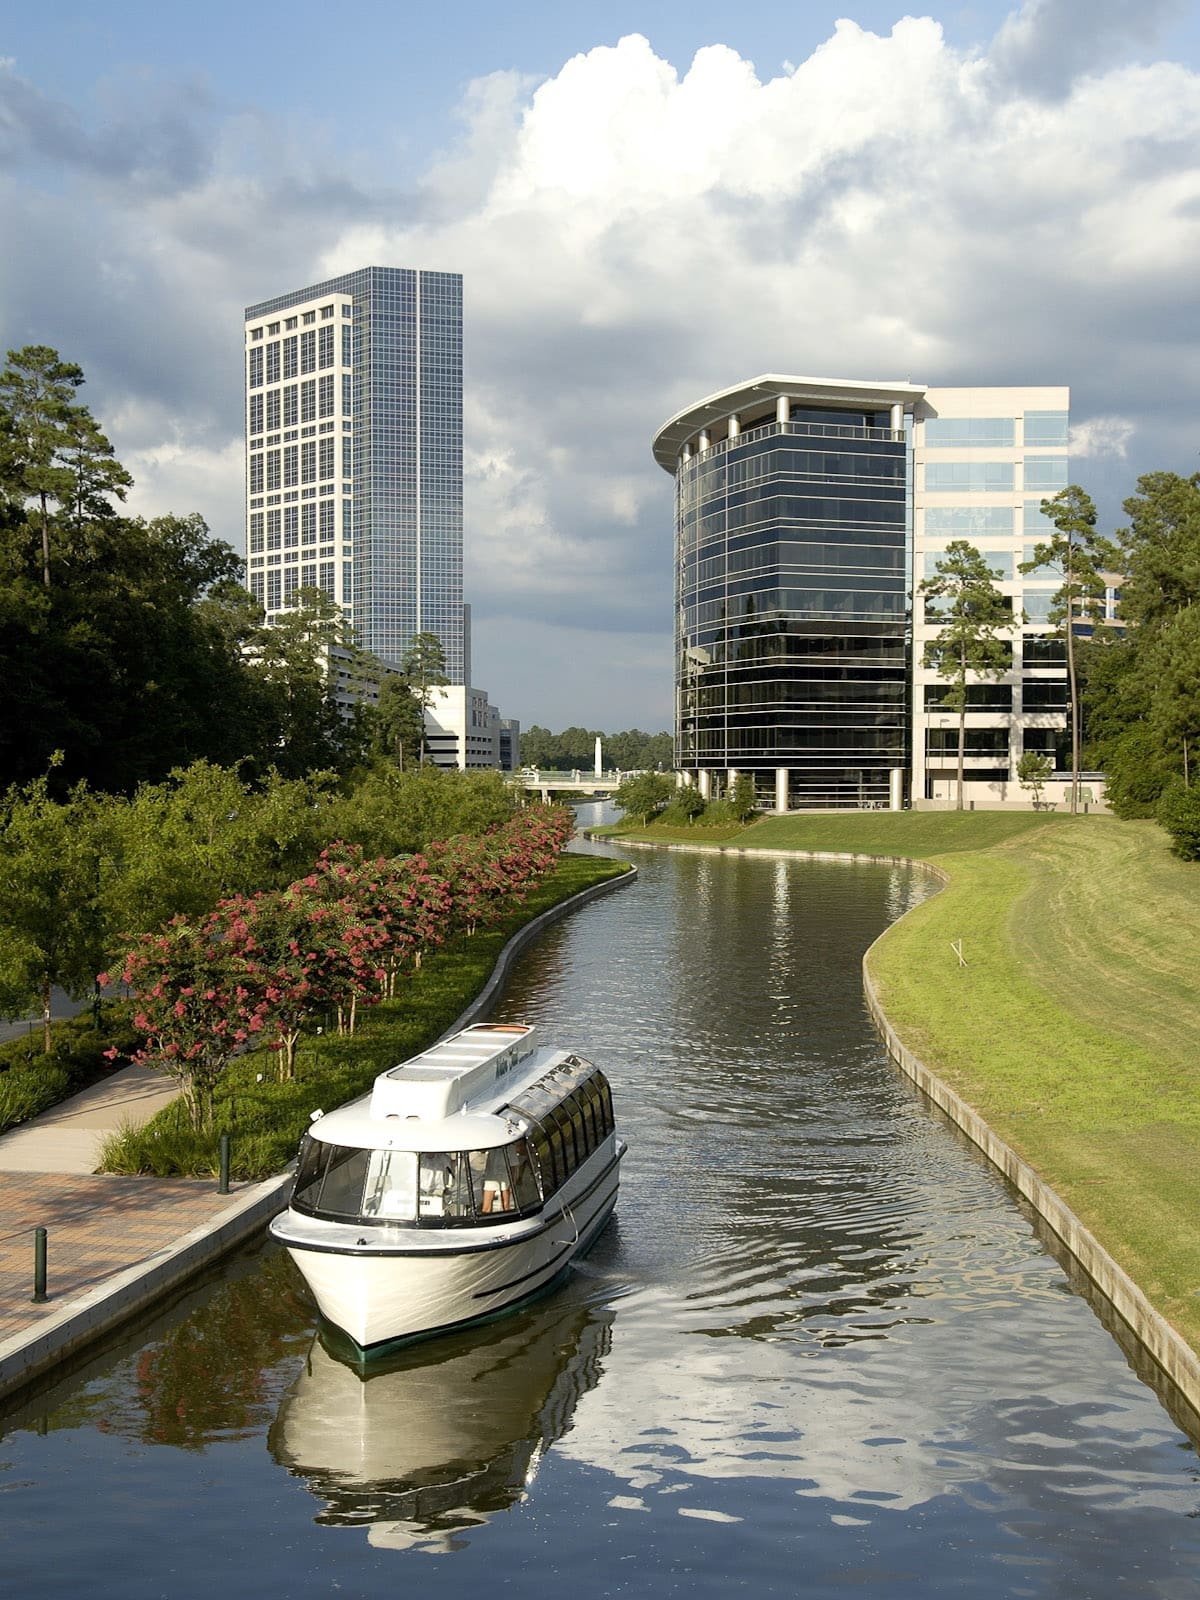 best place to live in texas is near houston 5 suburbs rank in top